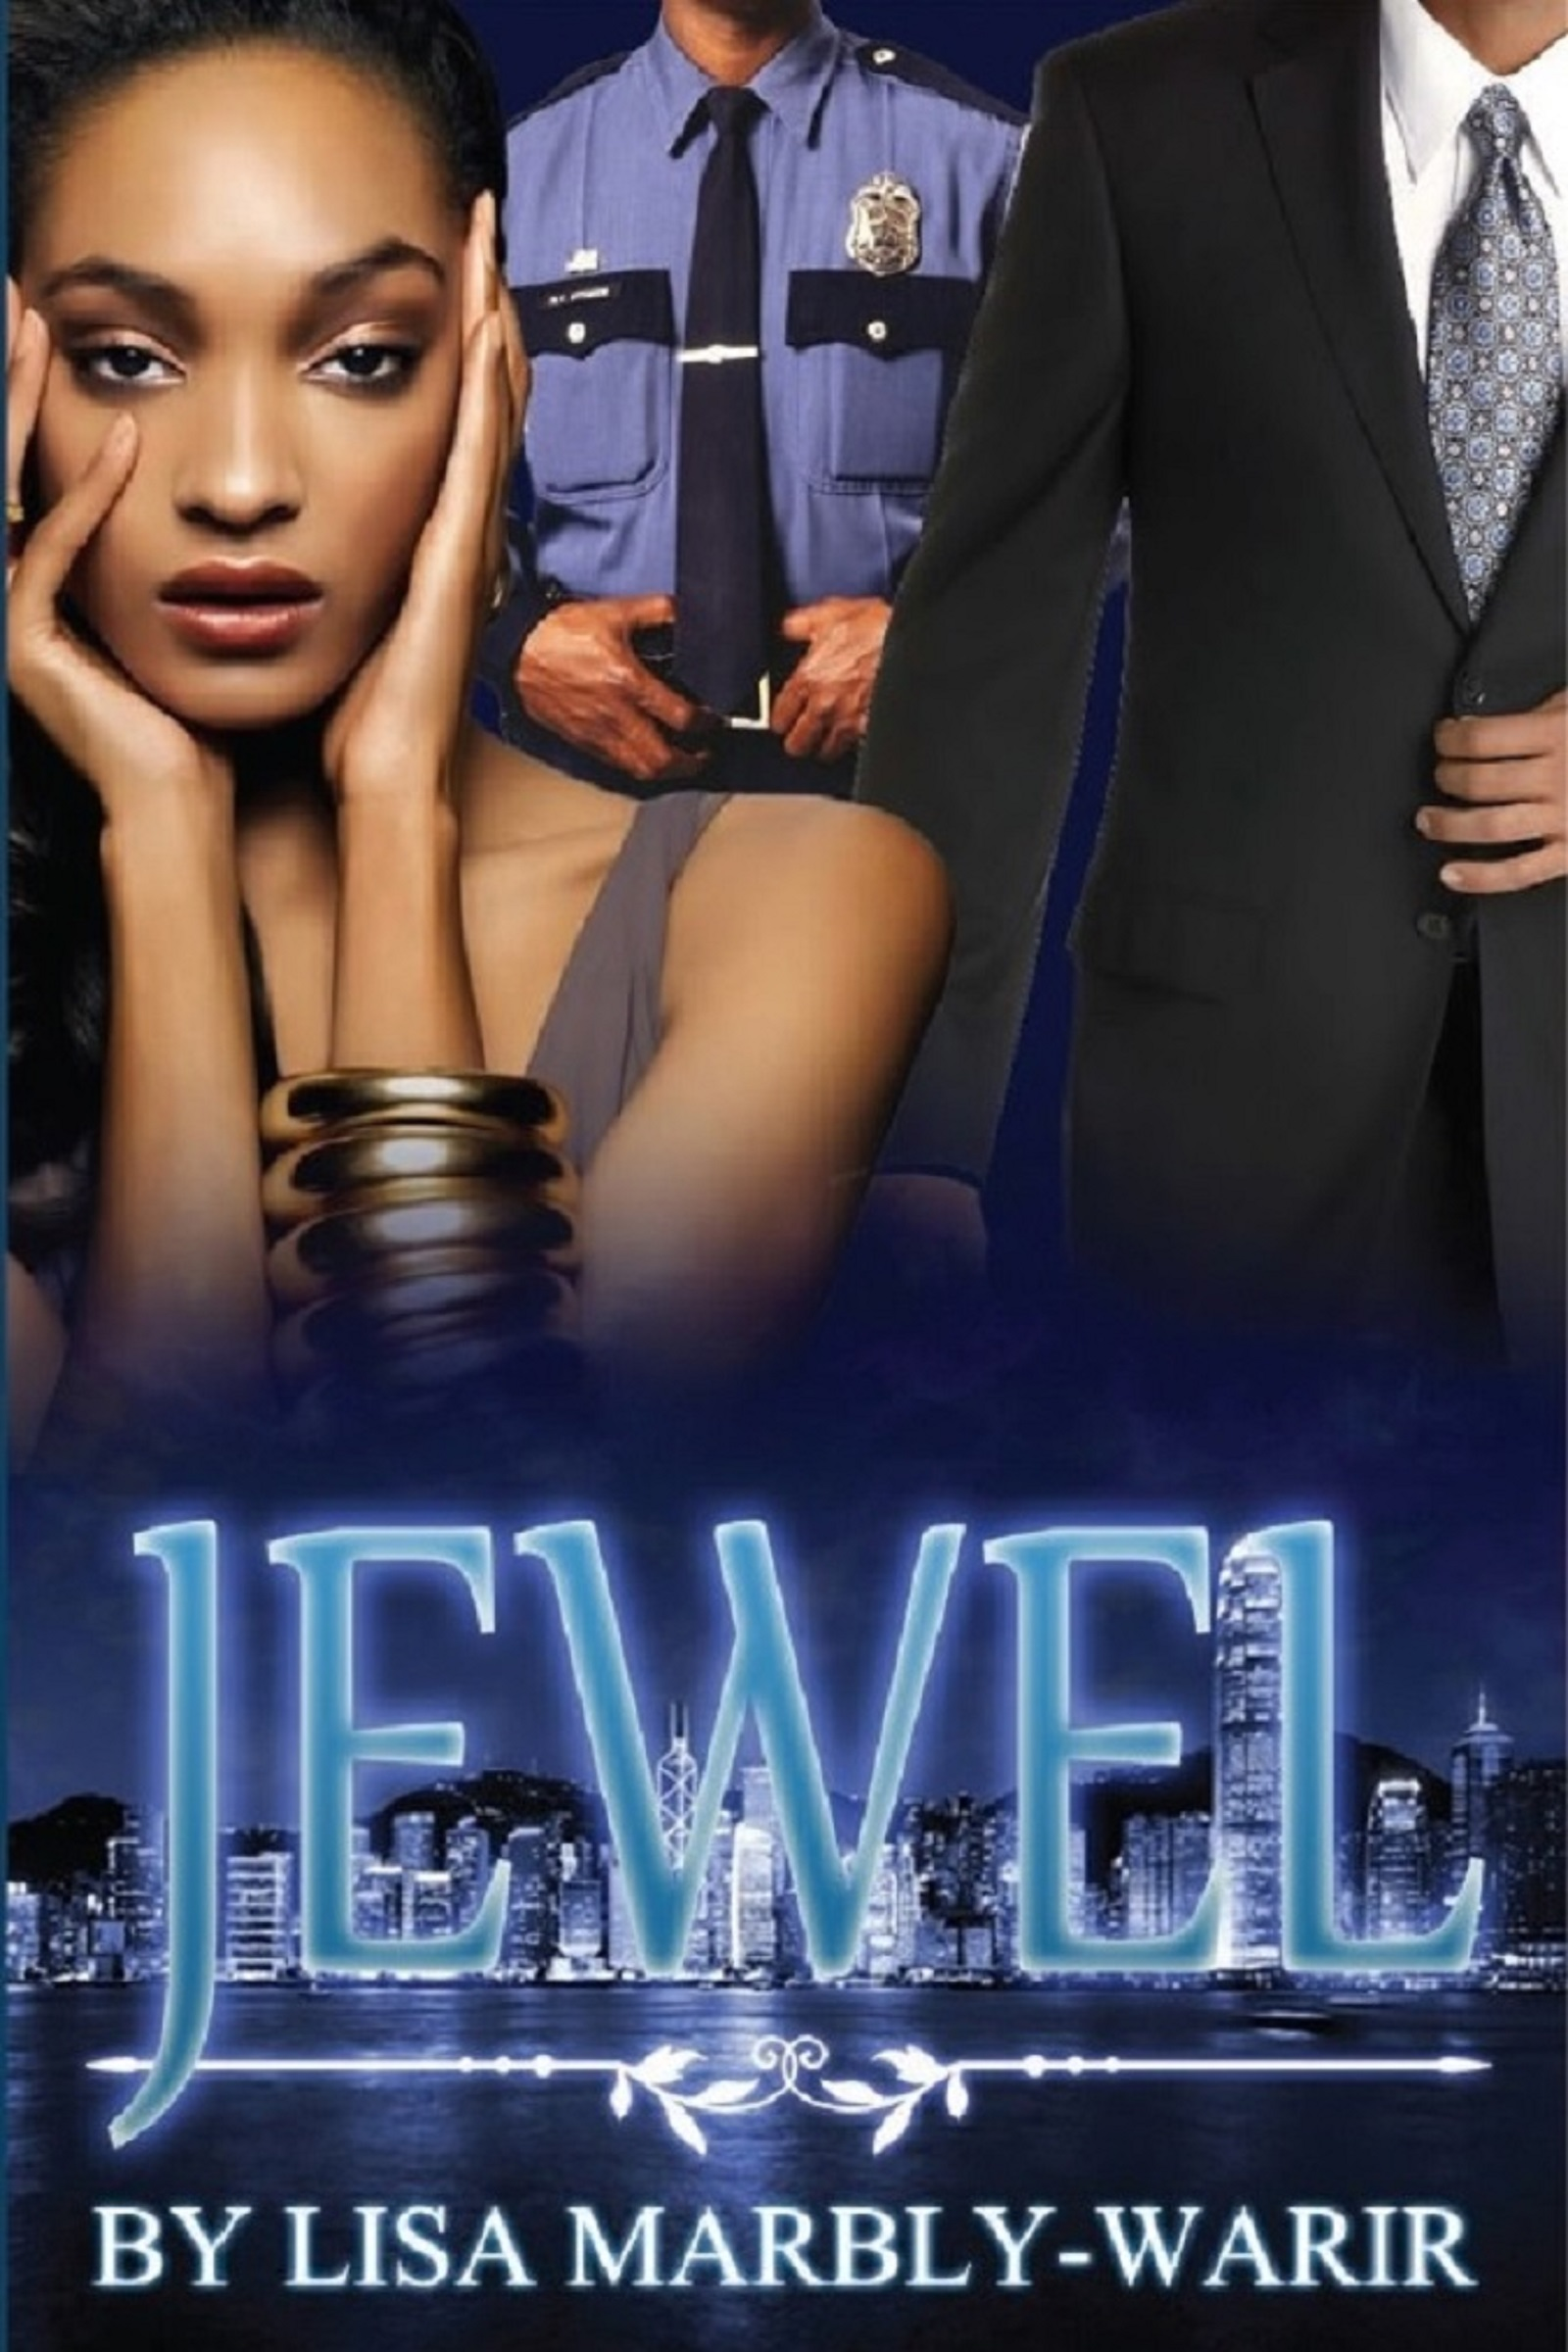 Ebook version of JEWEL